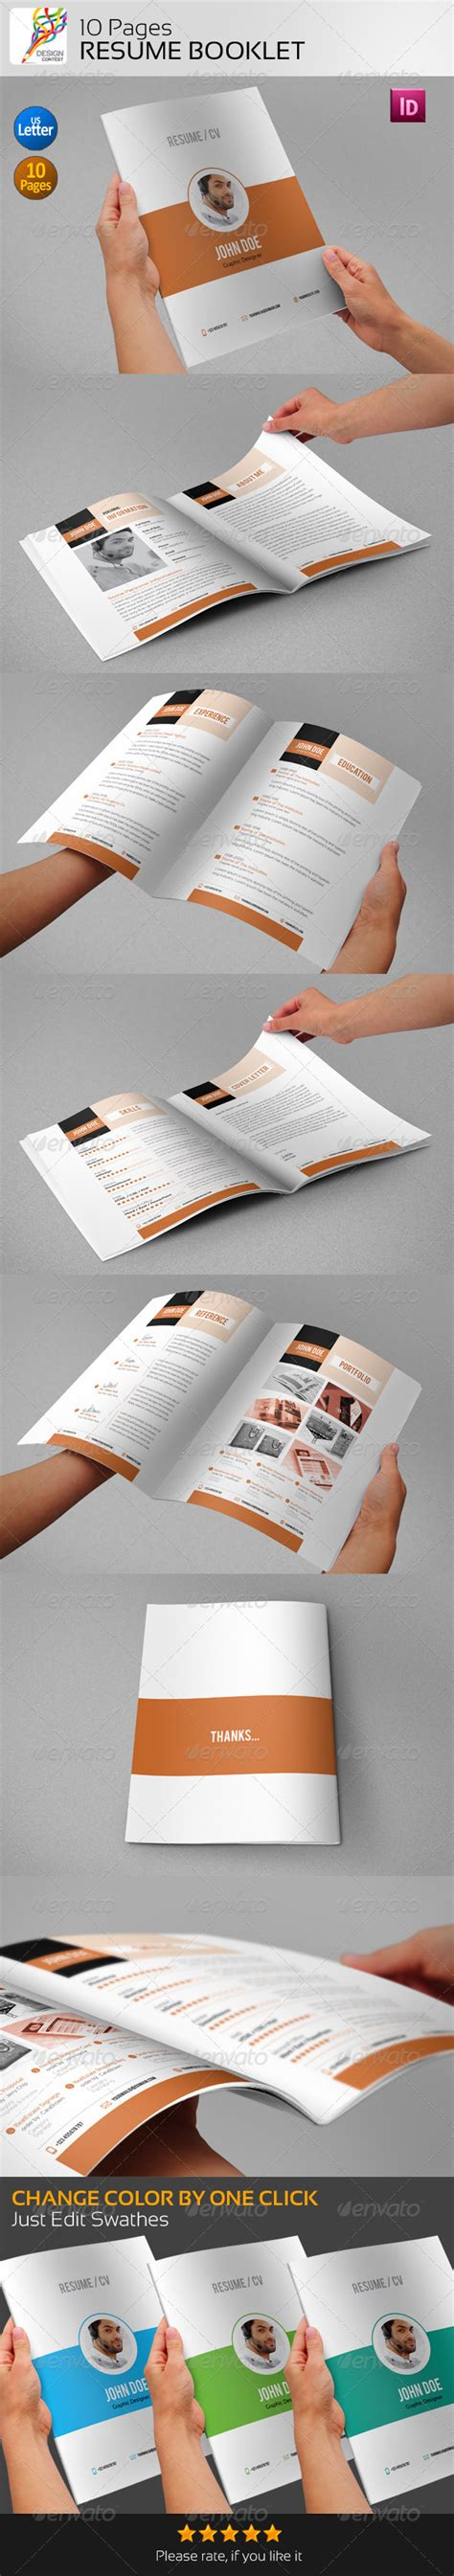 cv booklet design resume booklet 10 pages by contestdesign graphicriver